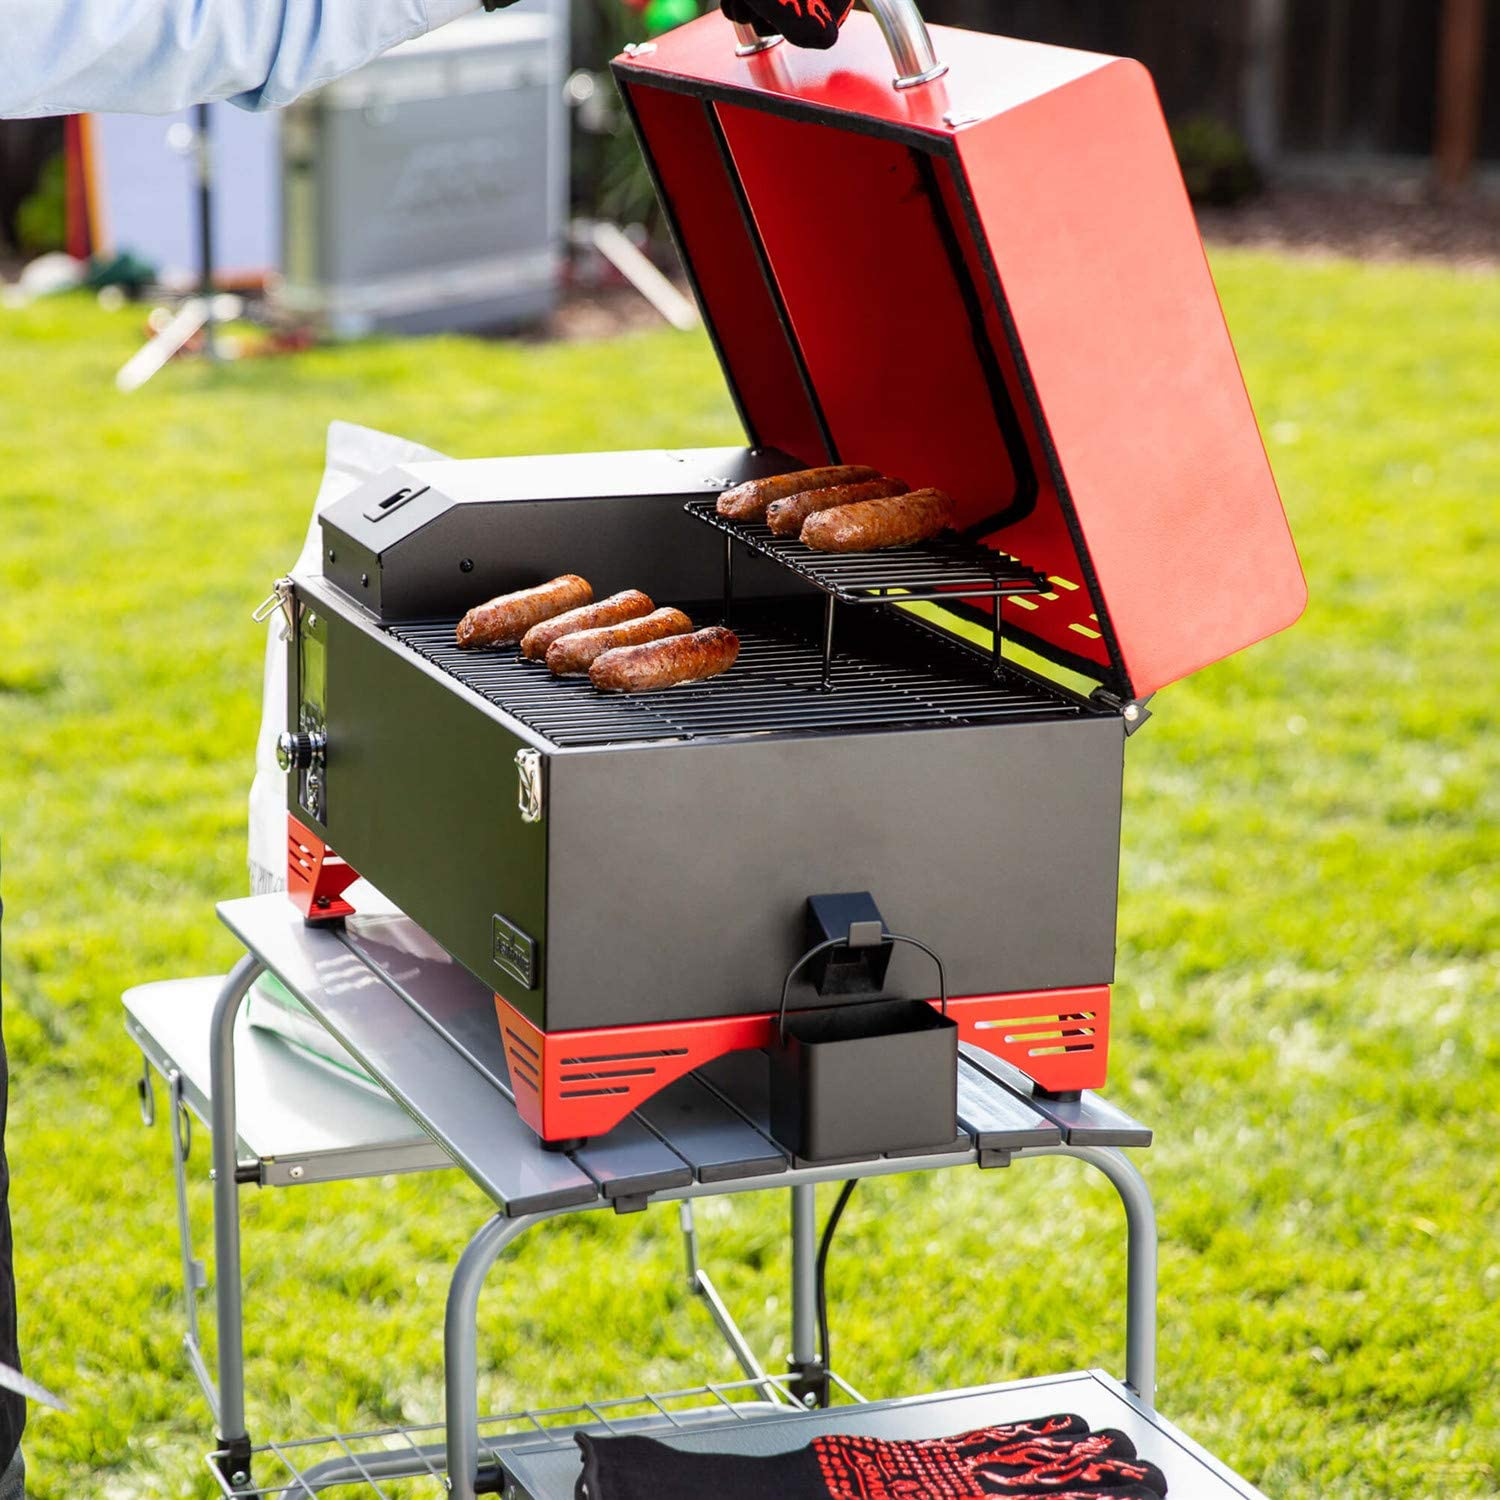 Pine Green Includes Waterproof Grill Cover and Meat Probe 8 in 1 BBQ Grill Set AS300 Cooking Area ASMOKE Portable Wood Pellet Grill and Smoker with Auto Temper Control 256 Sq in